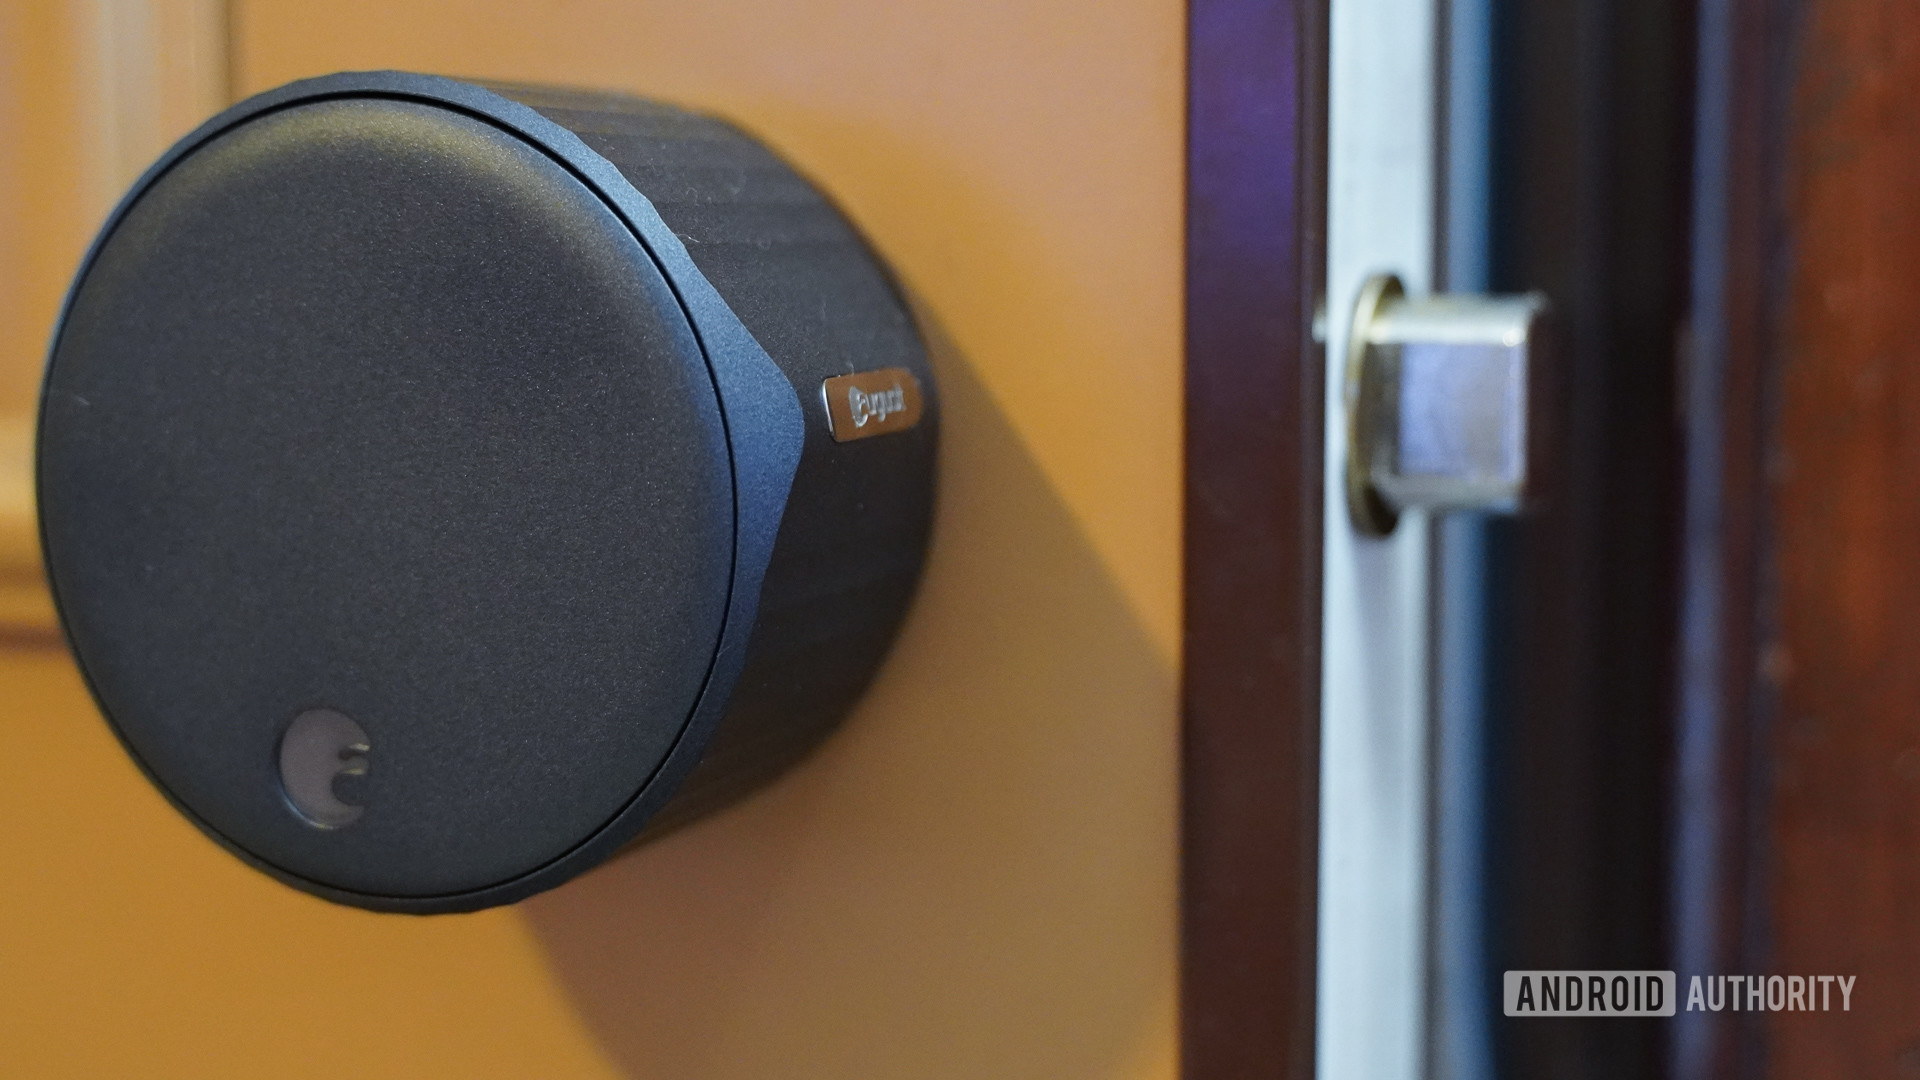 August smart lock assembled view with bolt